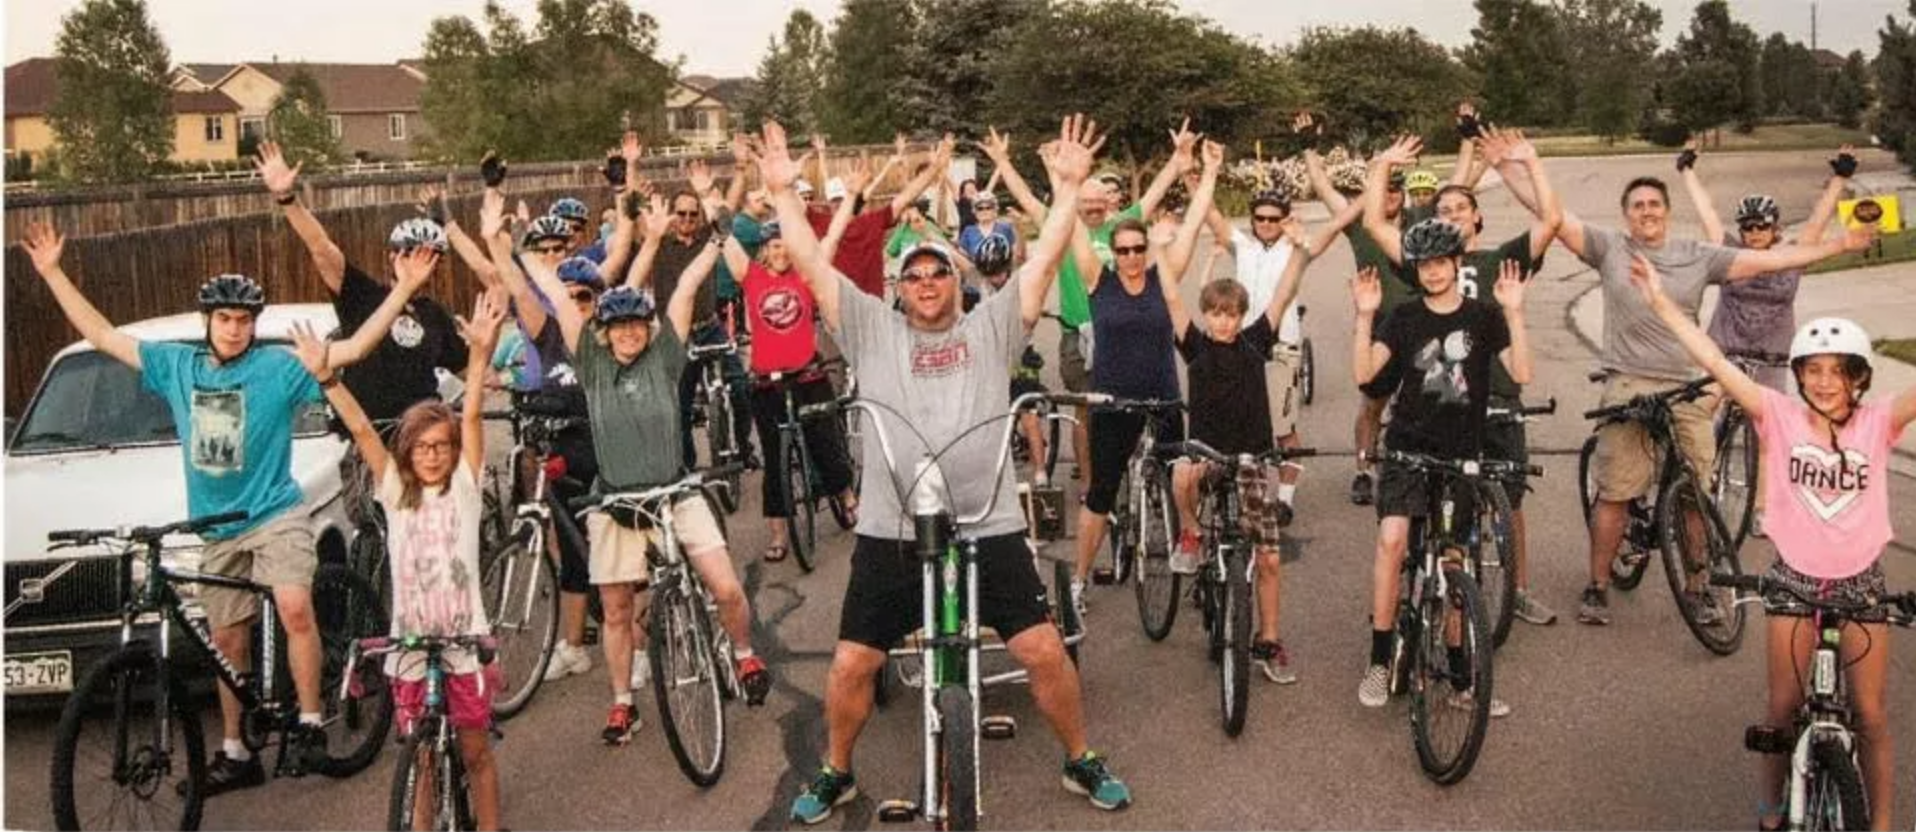 East Side Bike Night Longmont | The Wise Team